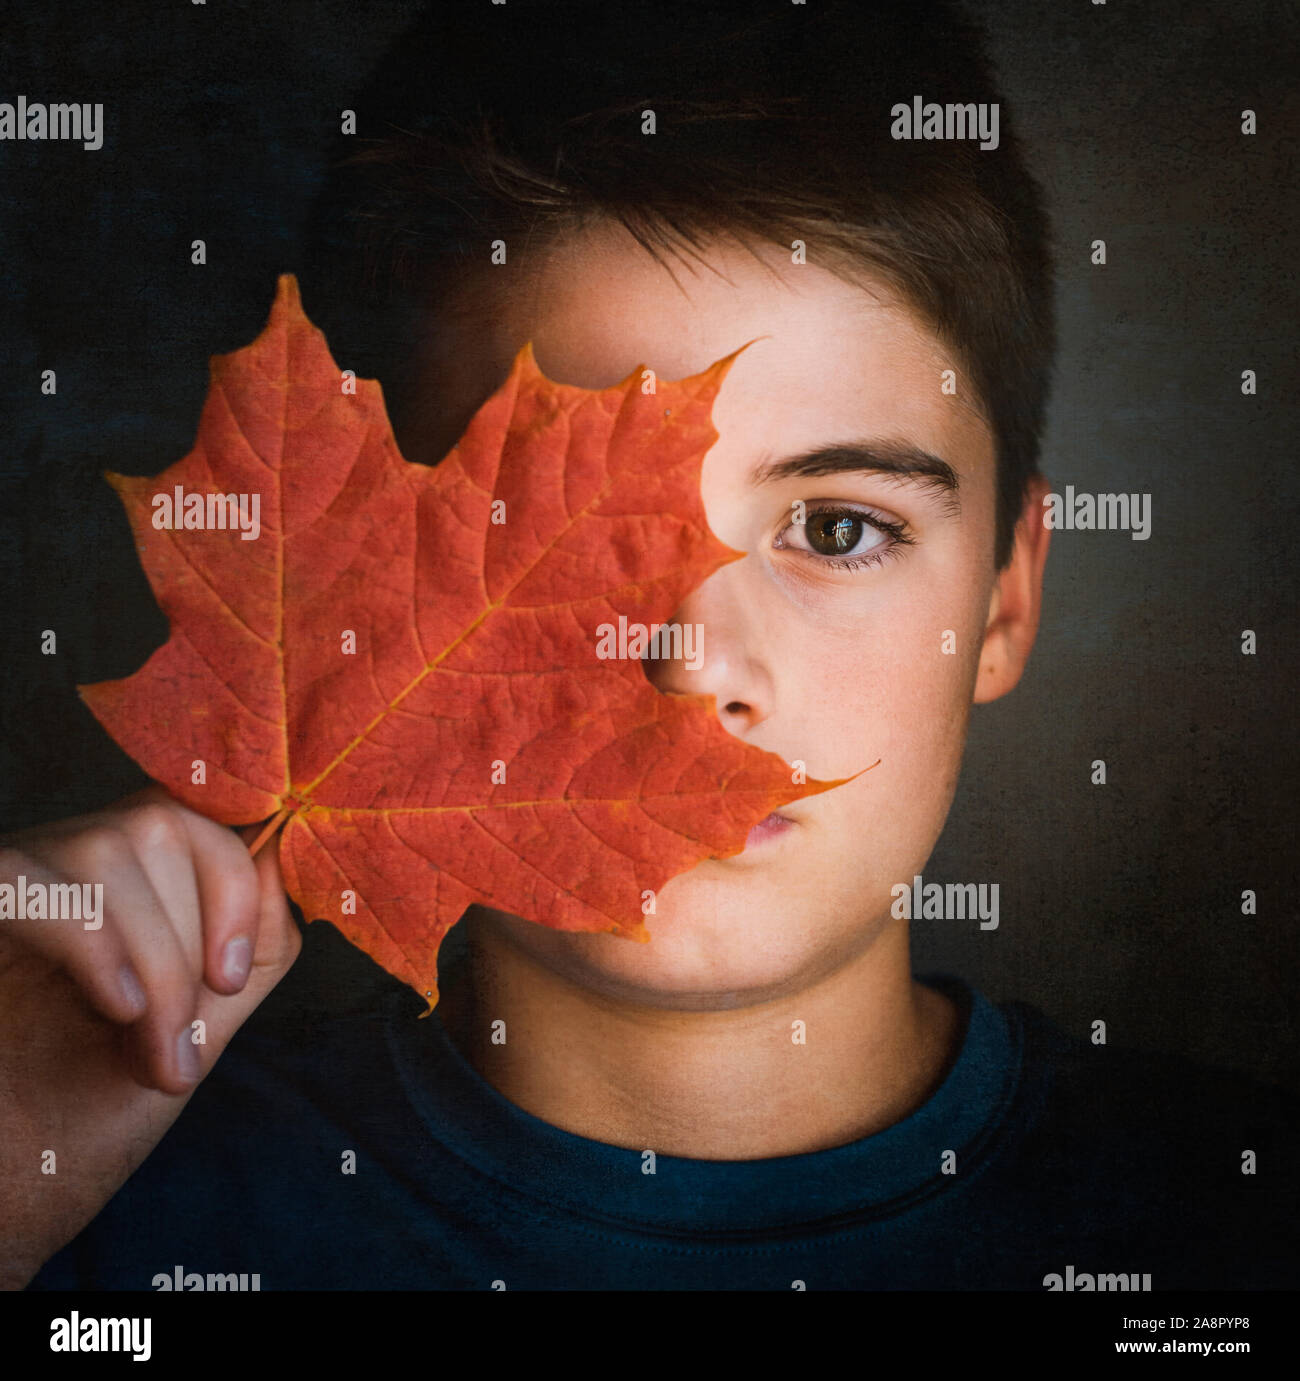 Close up portrait of boy covering half of his face with a maple leaf. Stock Photo